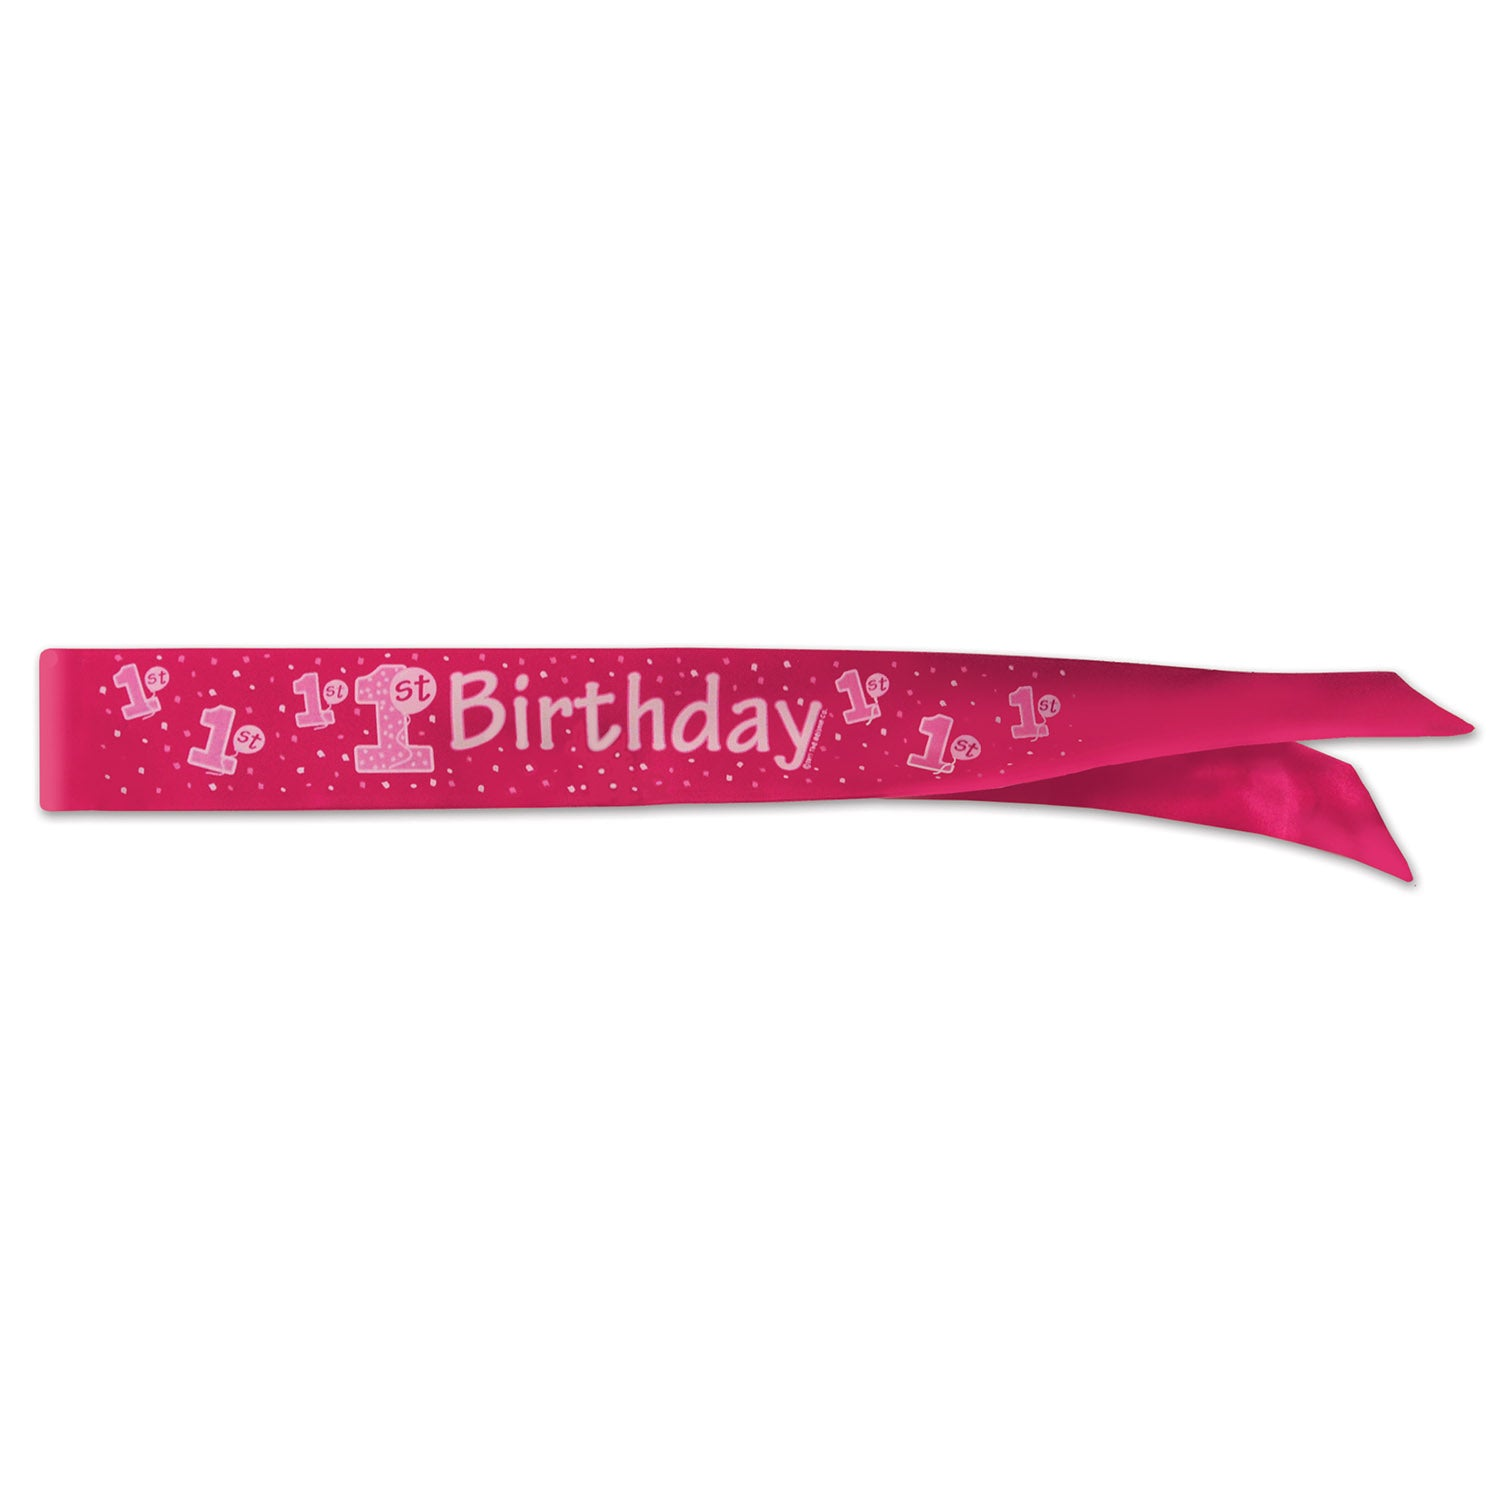 1st Birthday Satin Sash, pink by Beistle - 1st Birthday Party Decorations